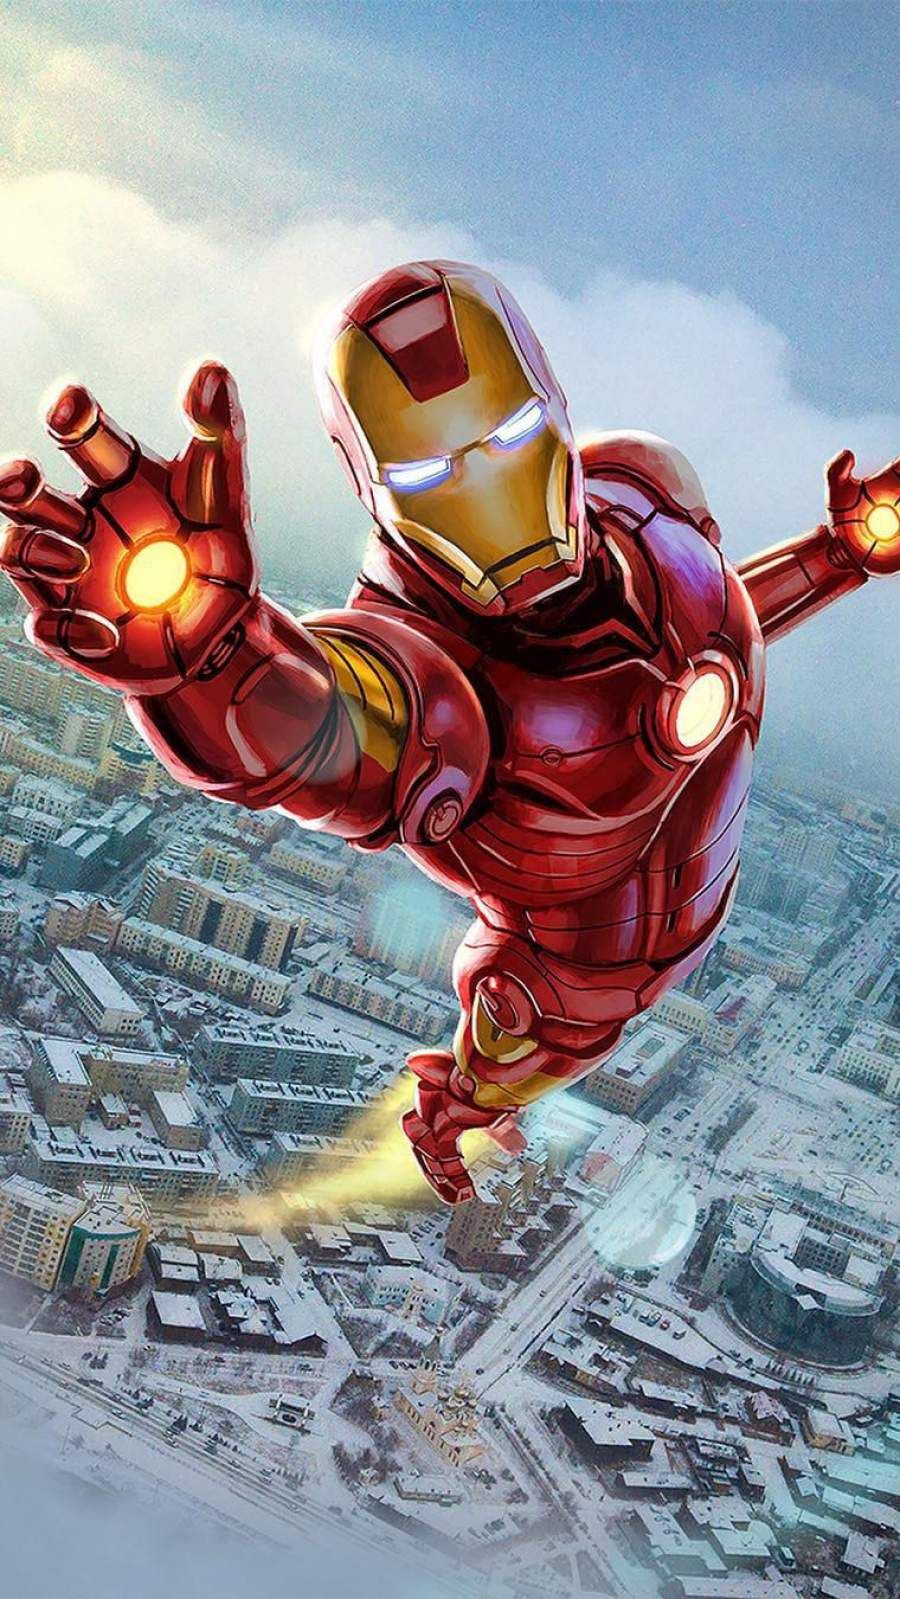 Masked Guy iPhone Wallpaper (With images) Iron man